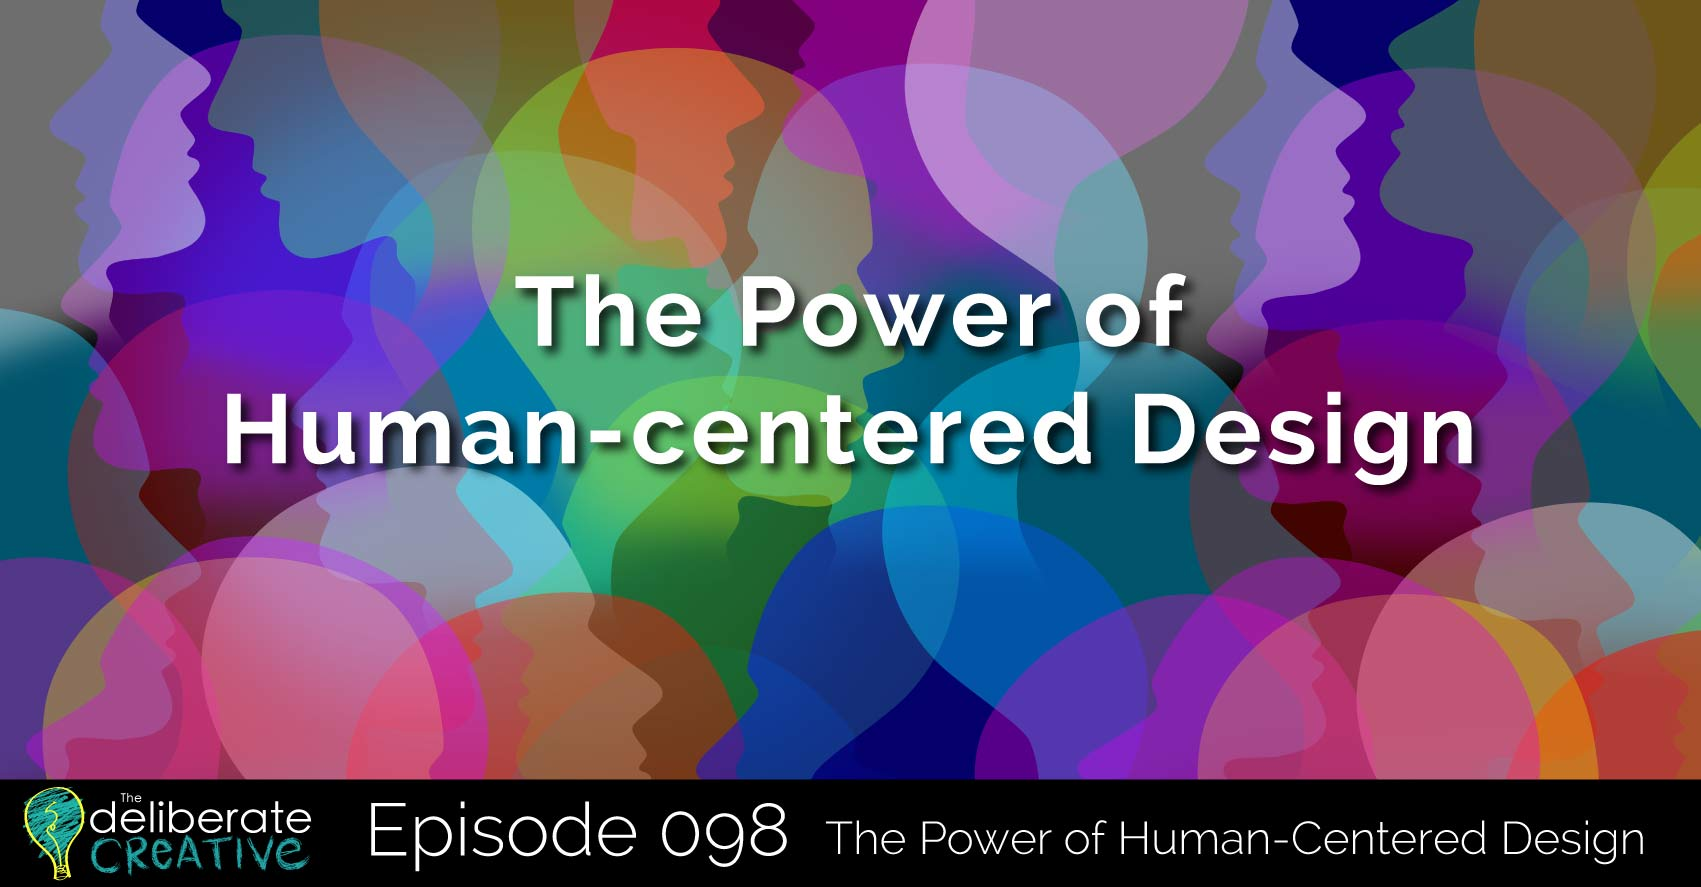 The Deliberate Creative Podcast Episode #98: The Power of Human-centered Design